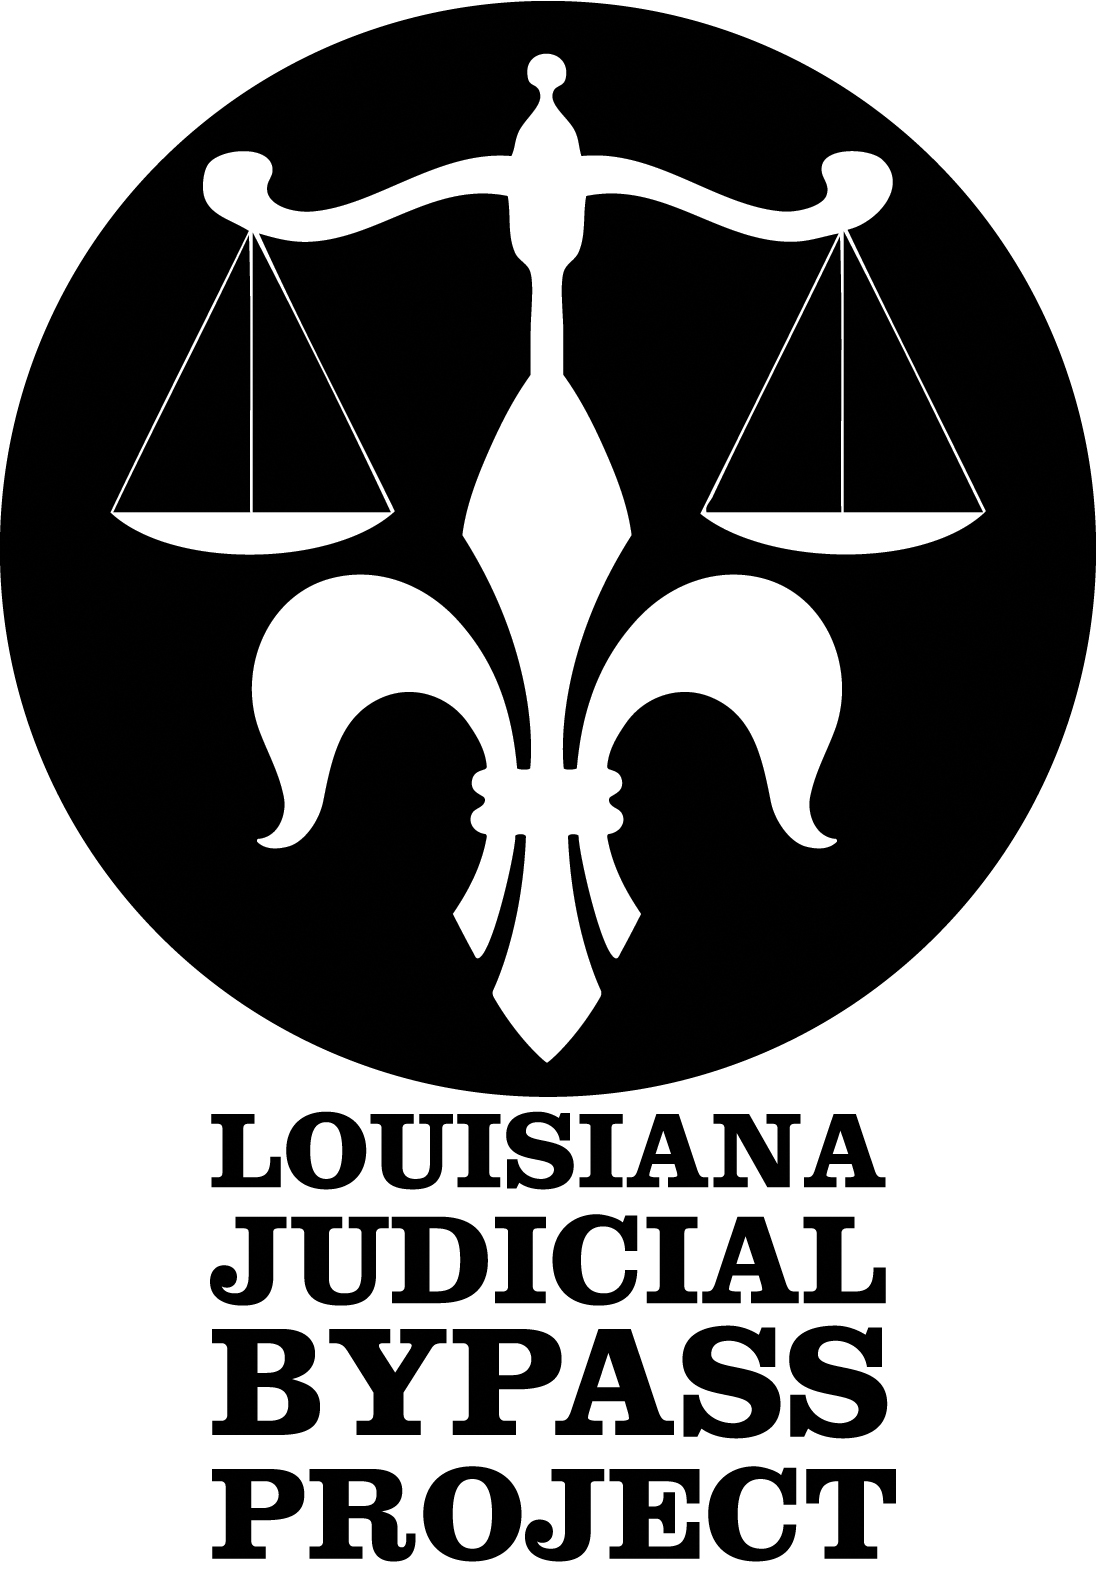 Louisiana Judicial Bypass Project